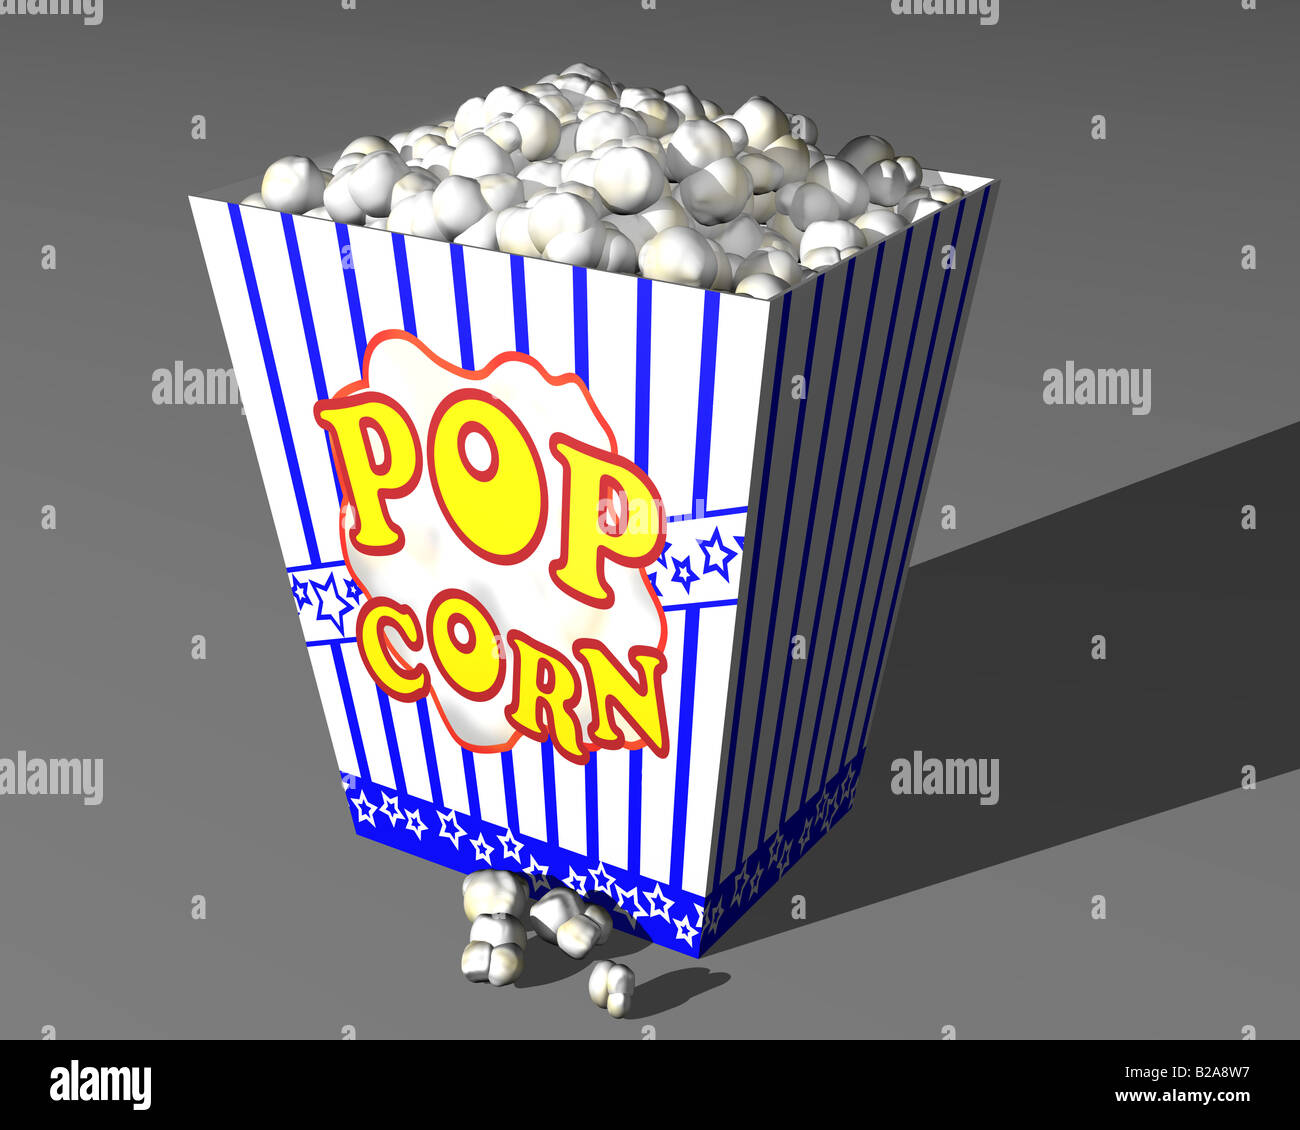 Illustration of a large box of cinema popcorn - Stock Image